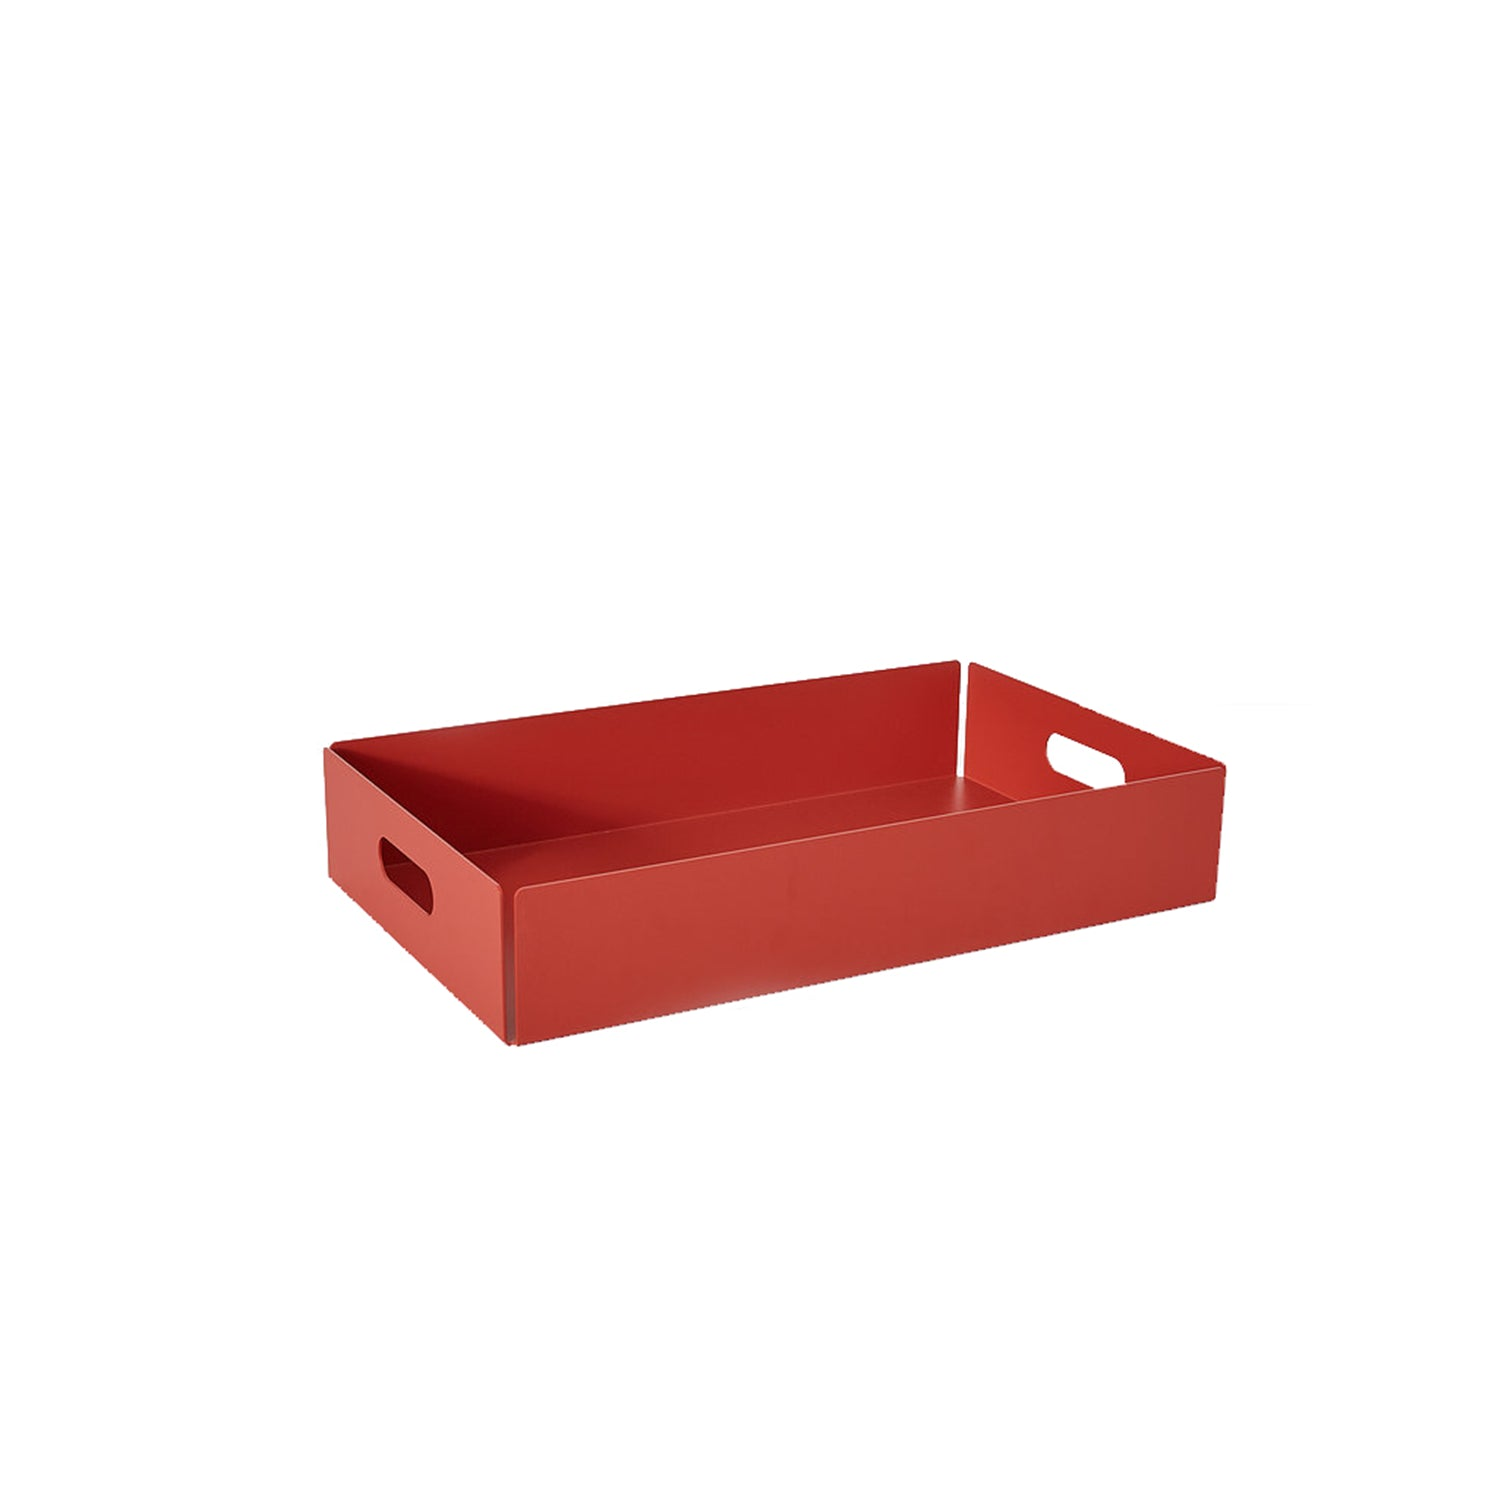 Metal Dowel Basket: Small + Coral Red